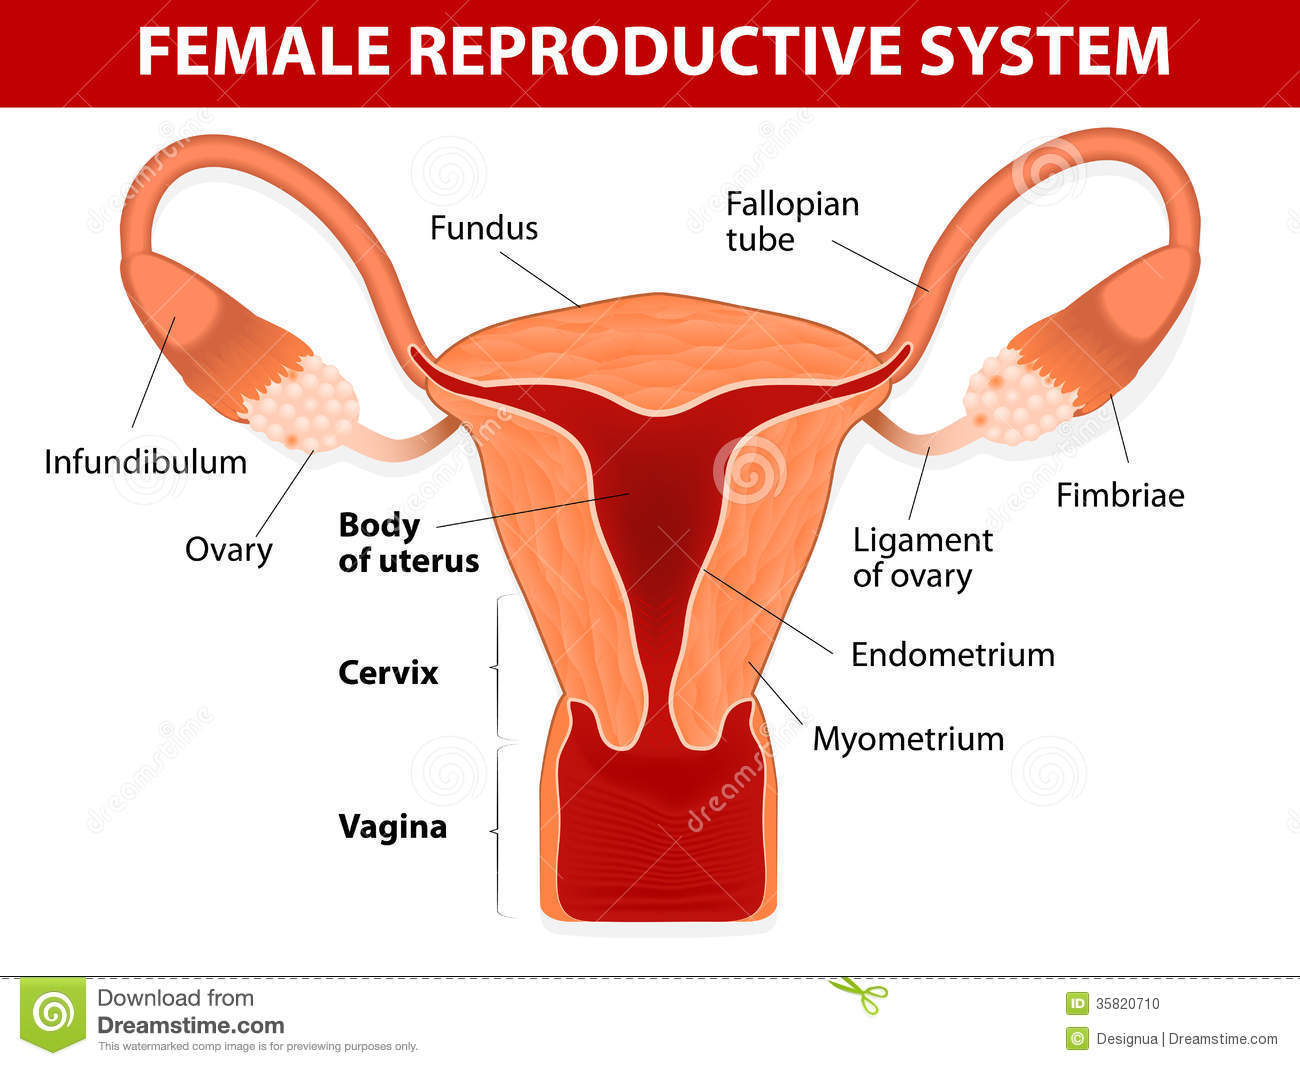 Anatomy Diagrams Female Reproductive System Wiring Info Store Gtgt 944 2 Brake Rear Diagram Stock Vector Illustration Of Ligament Rh Dreamstime Com Dementors Chart Cat Dissection